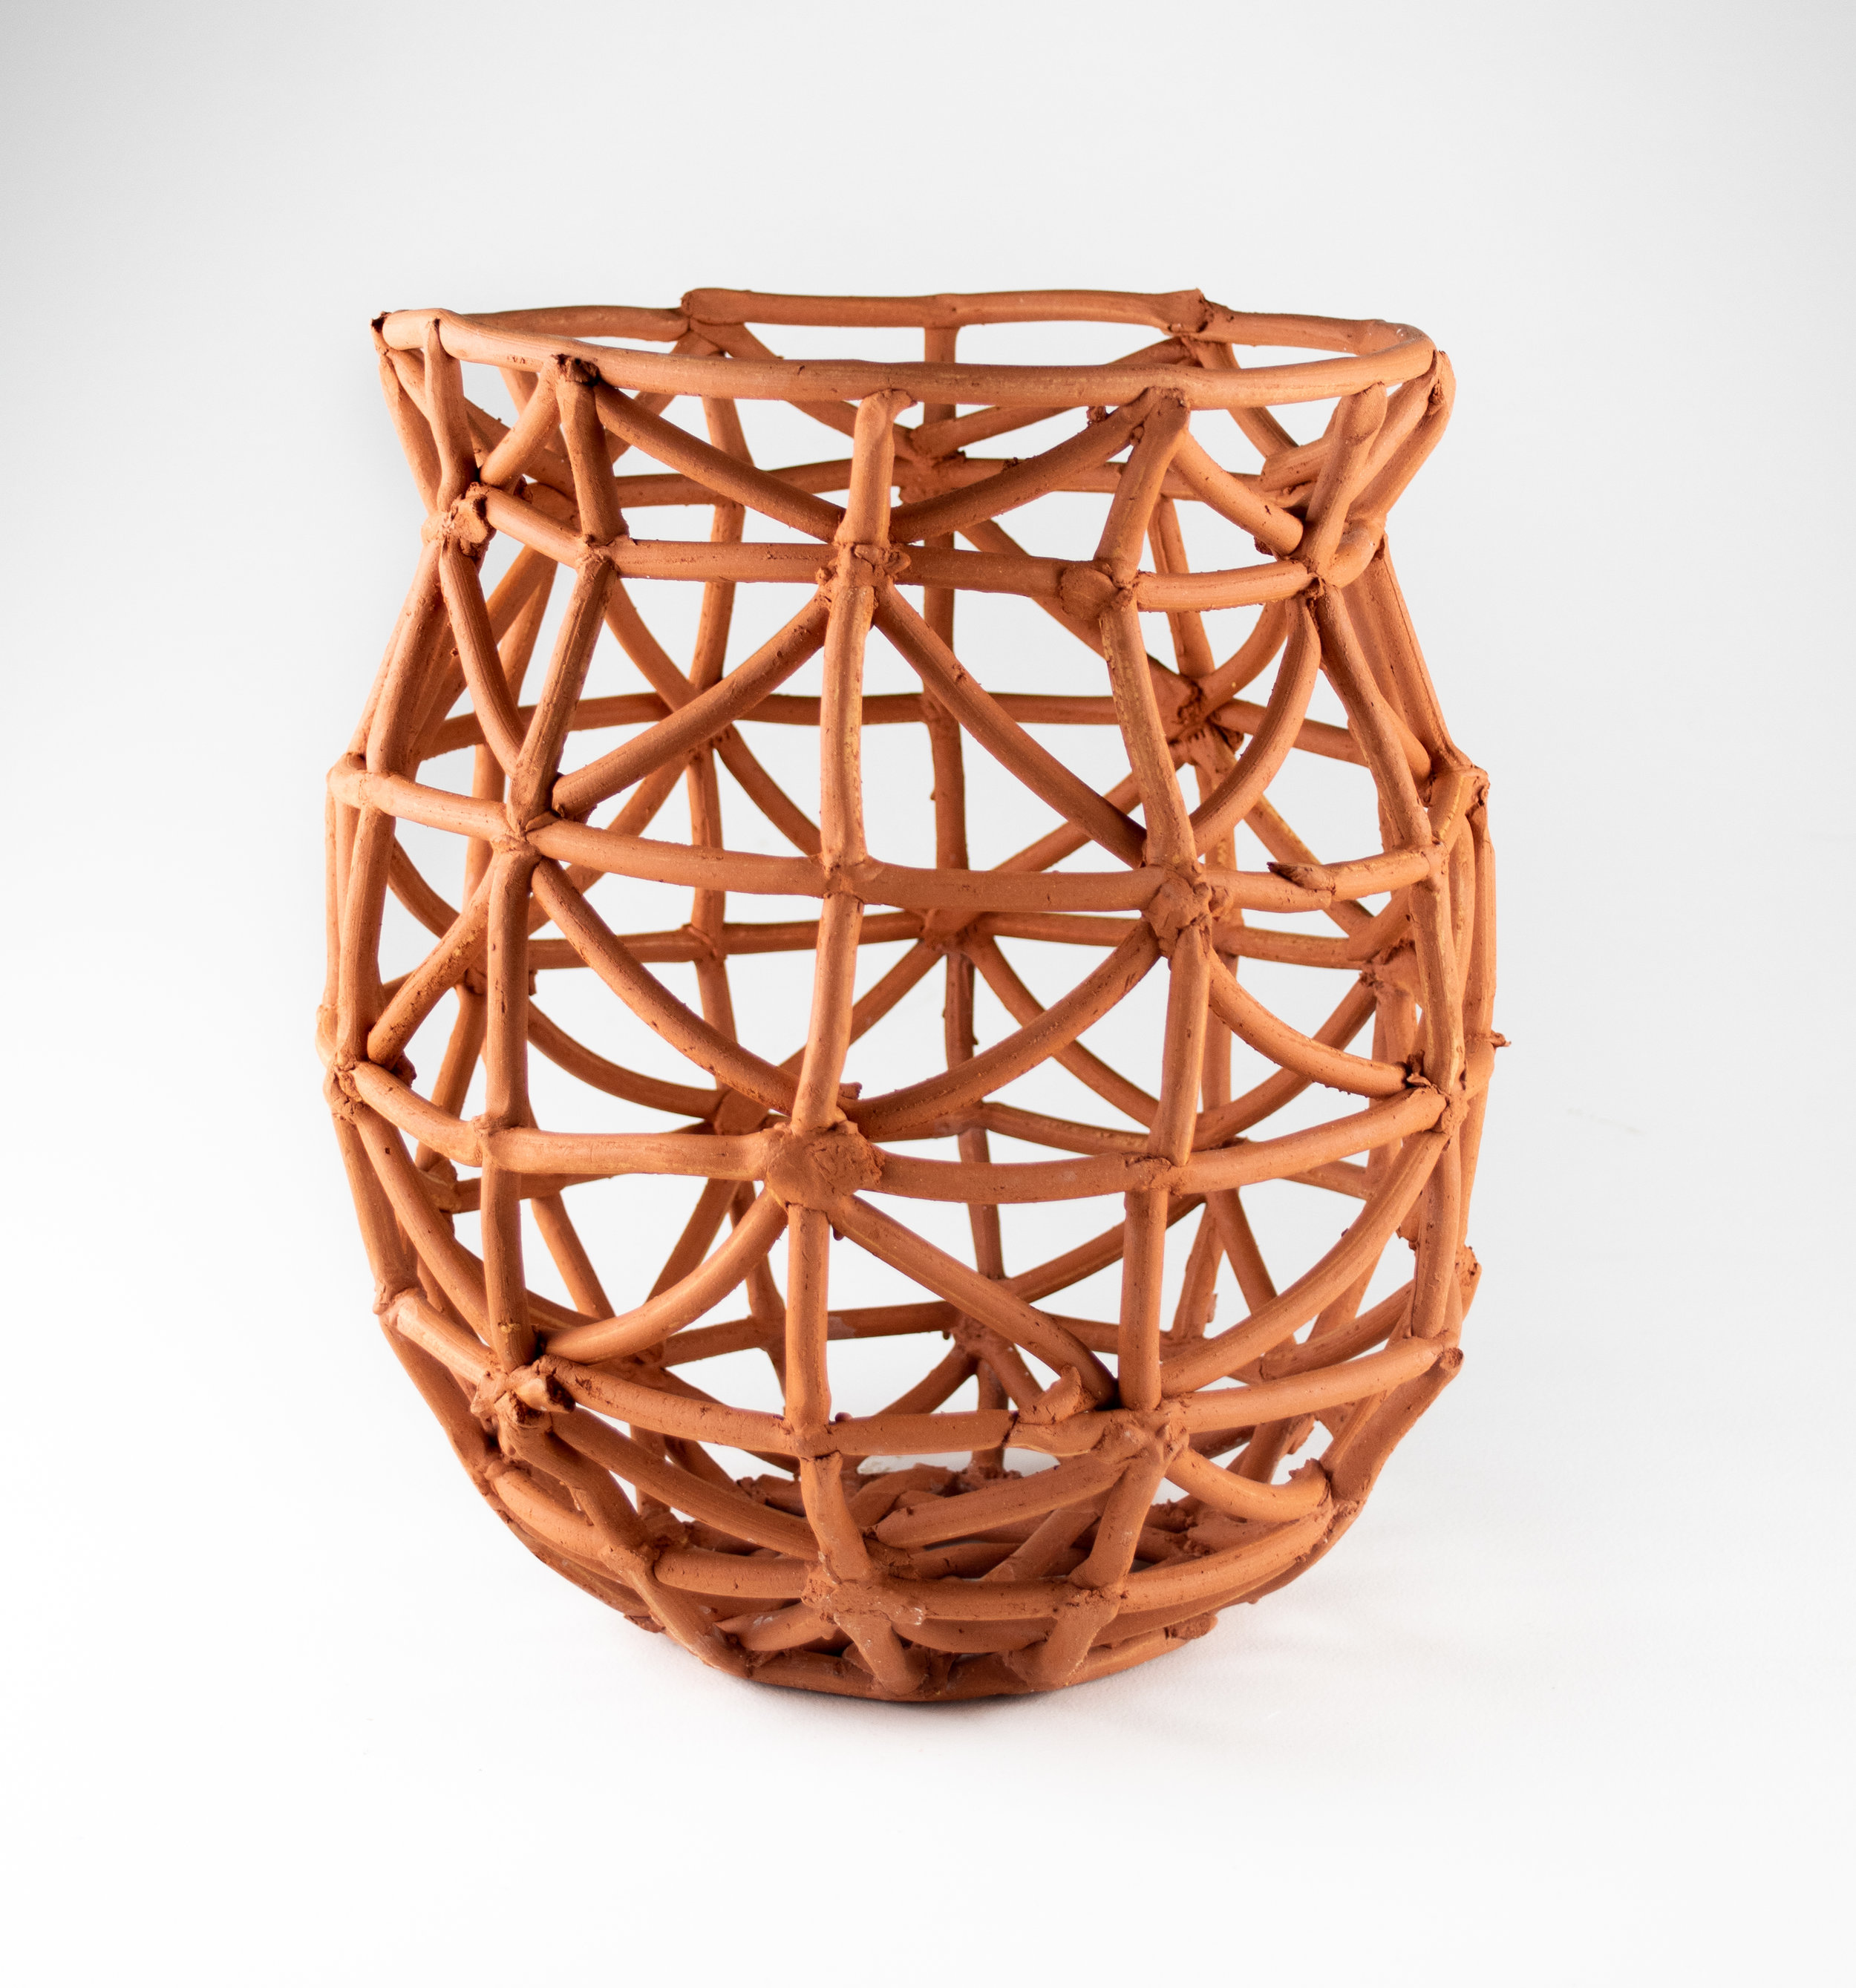 Grain Storage Basket , 13x20x13, Earthenware, 2019